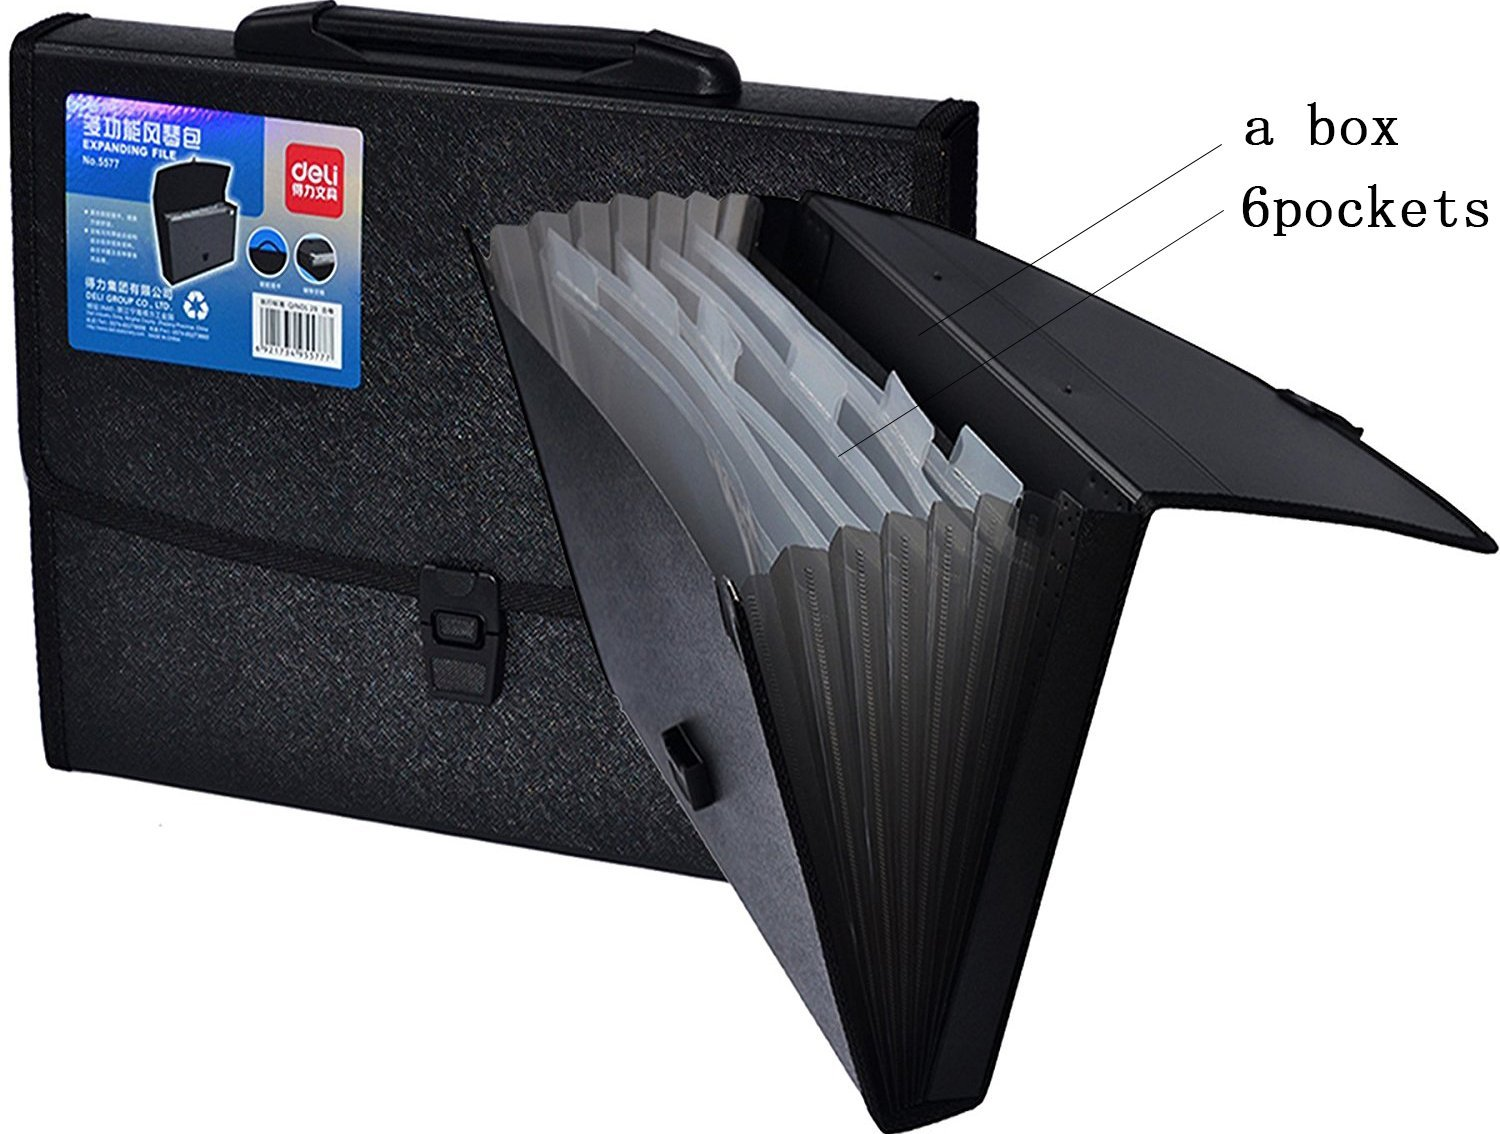 Deli 7 Pockets with A File Box,A4 and Letter Size Expanding Accordion File Folder with Buckle Closure and Flexible Handle 40D557